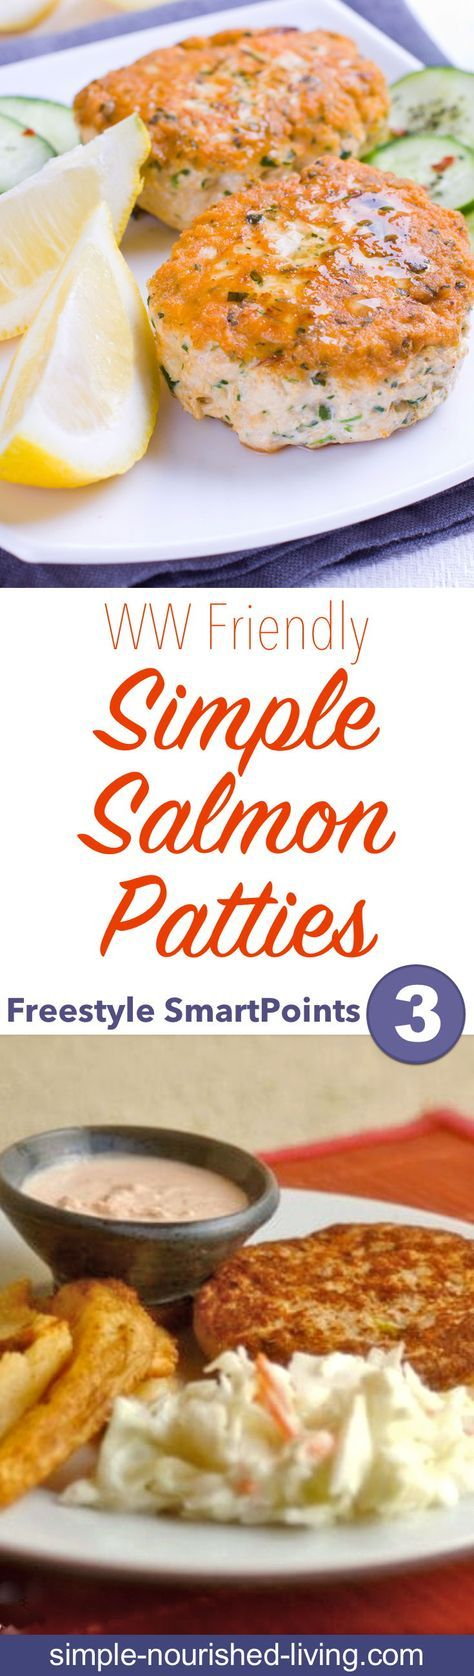 Weight Watchers Recipe of the Day: Quick & Easy Salmon Patties - I made these simple salmon patties for dinner recently. They were a hit. 3 WW Freestyle SmartPoints each - Simple-Nourished-Living.com!